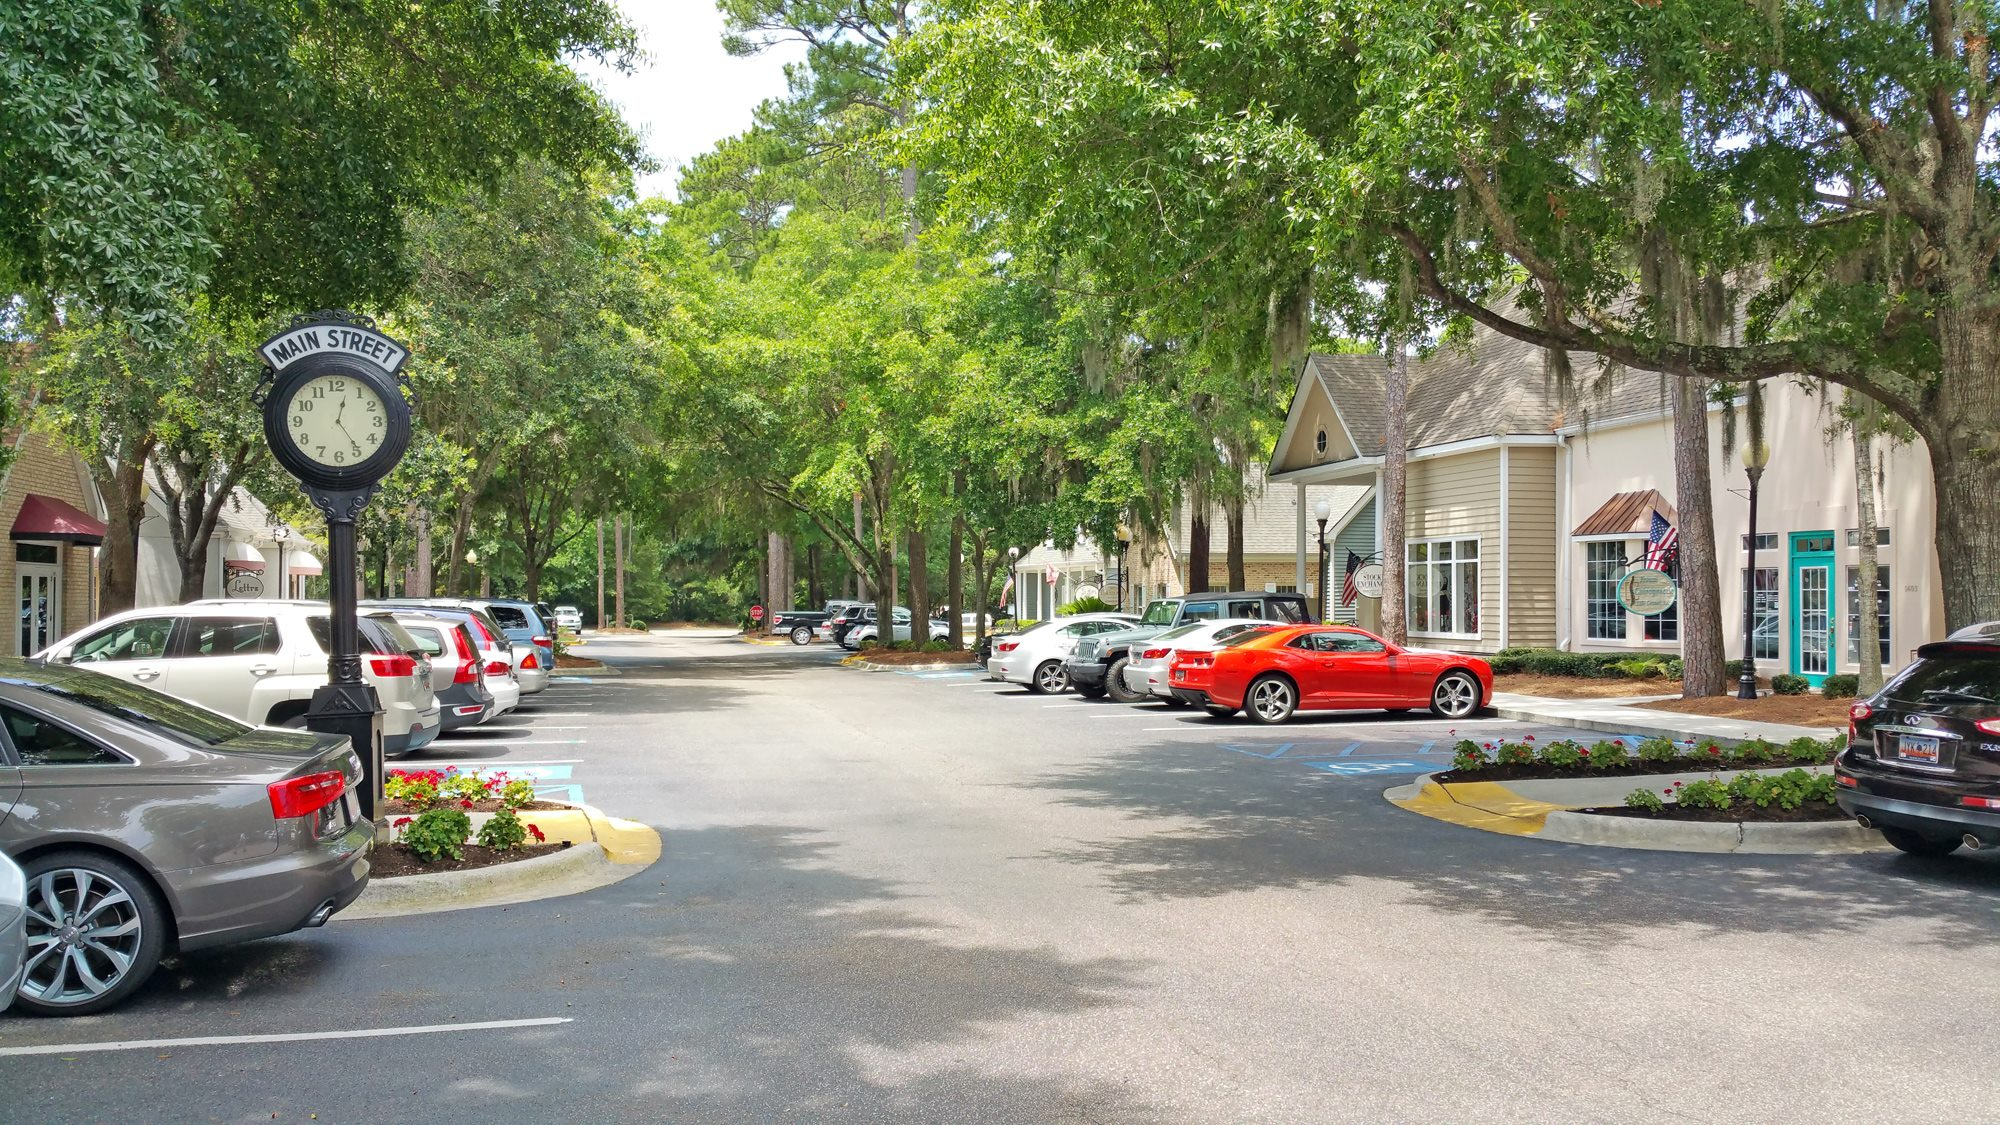 Main Street Village Hhi